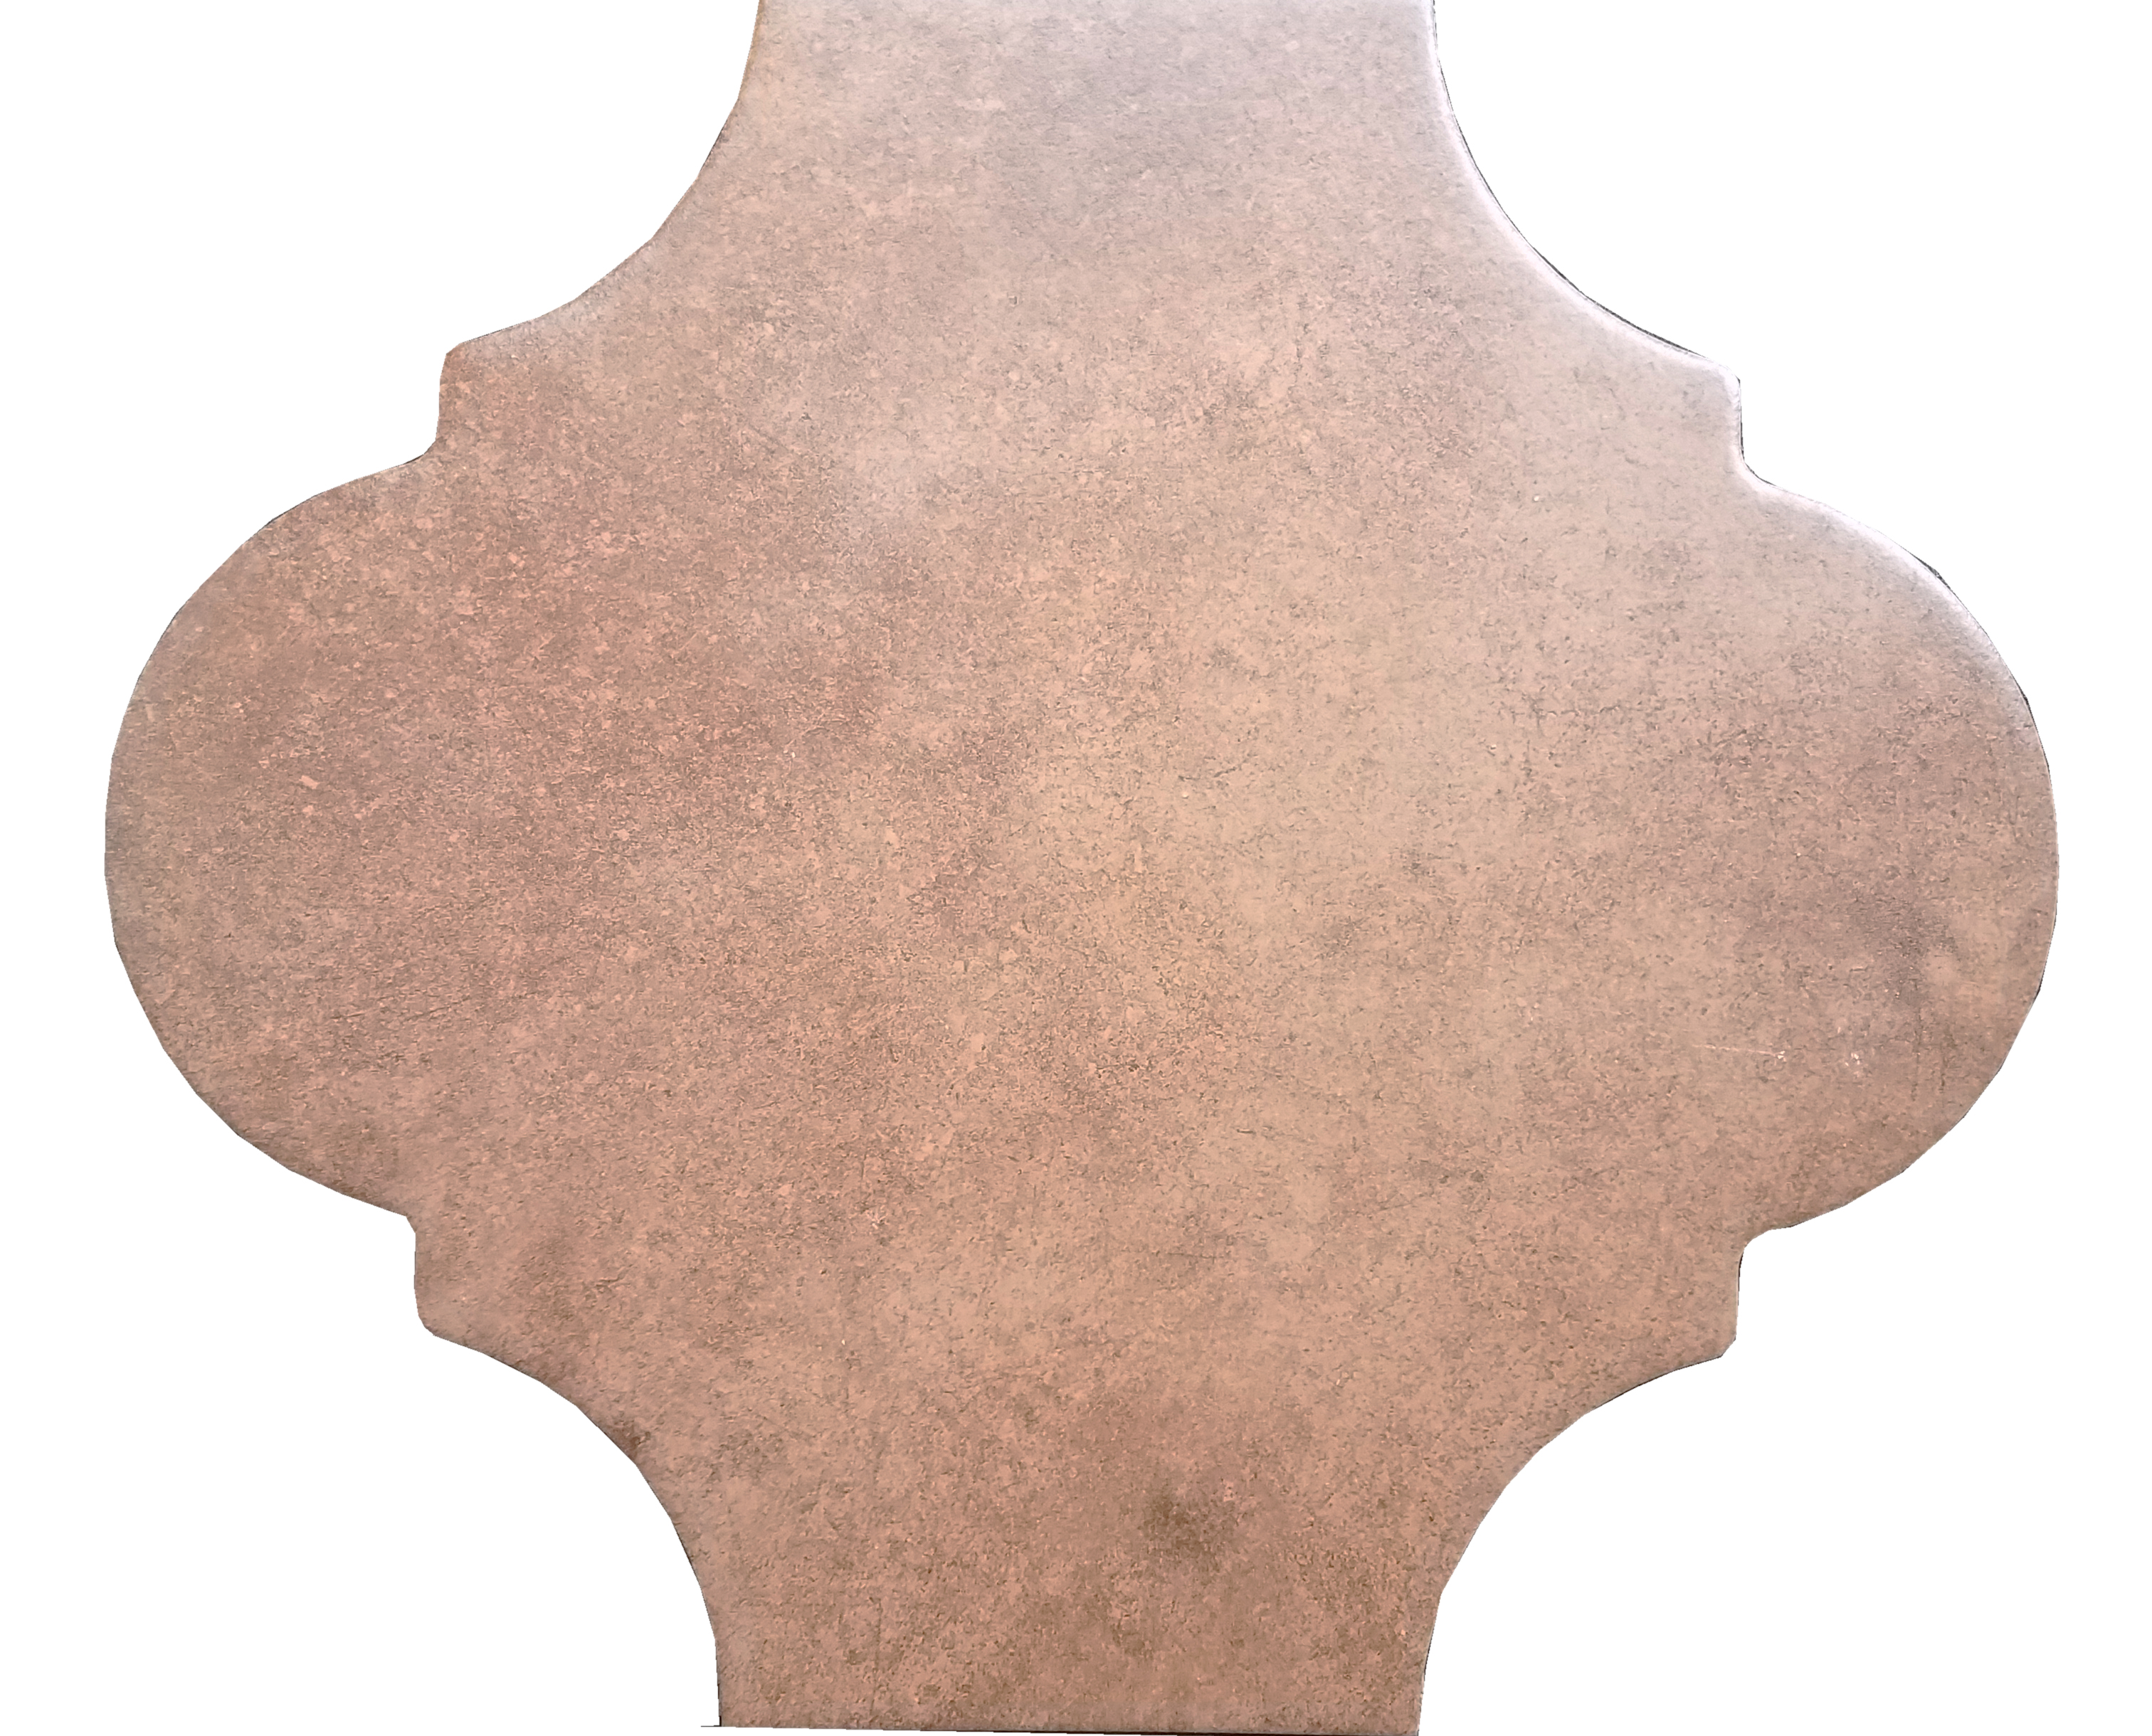 10 X 10 NATUCER PROVENZAL FUSION CLAY PORCELAIN TILE